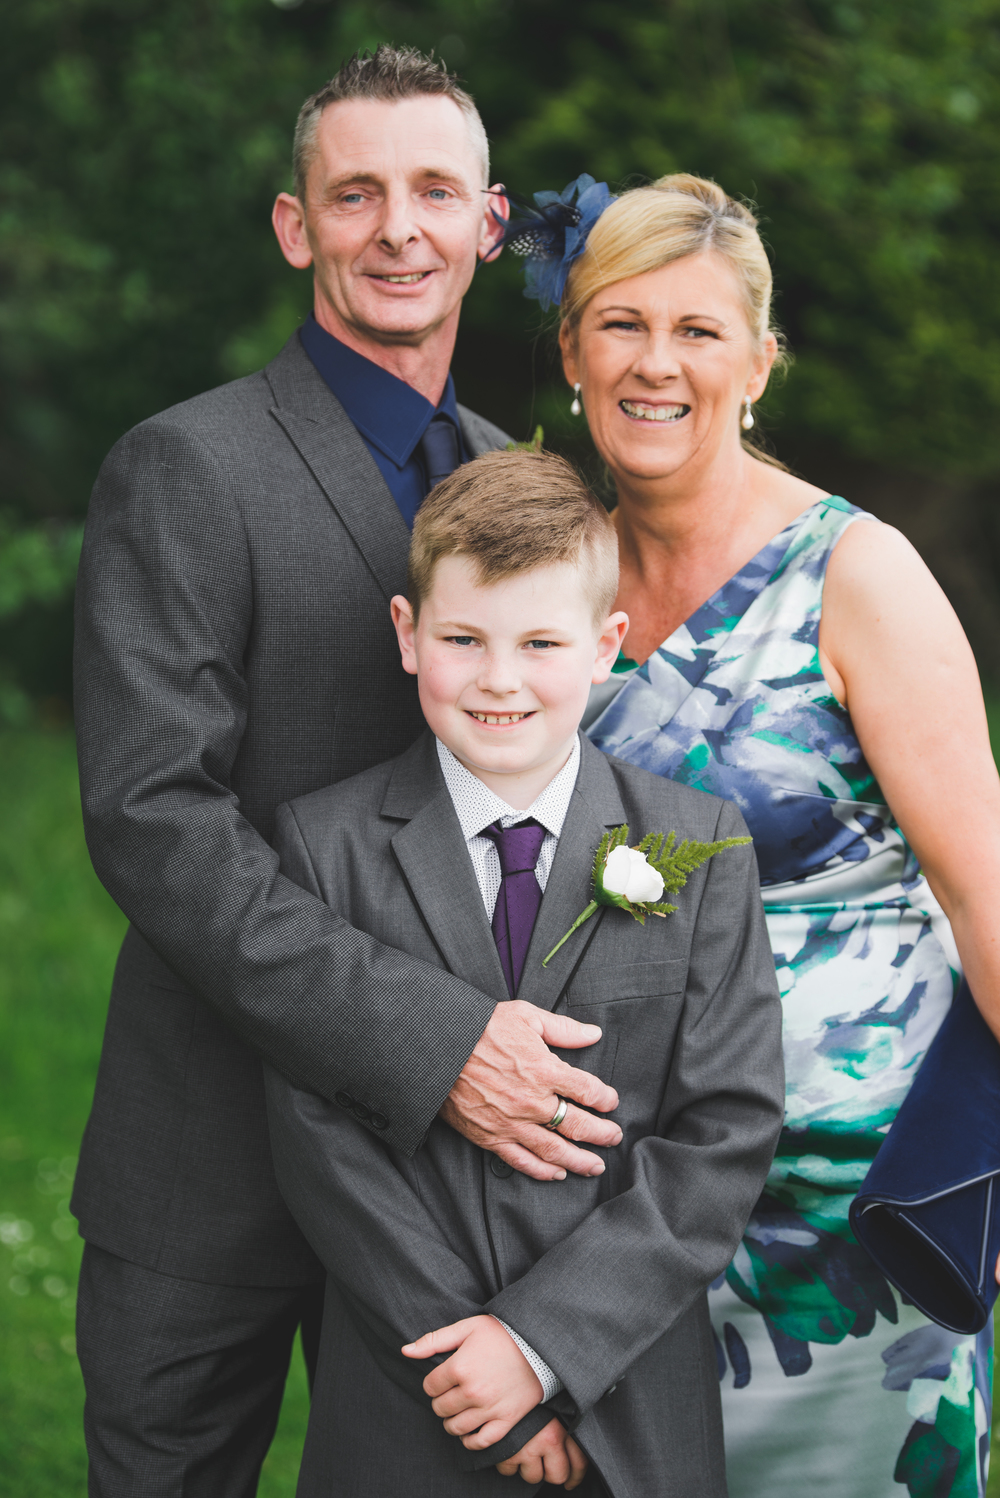 Northern_Ireland_Wedding_Photographer_Portraits